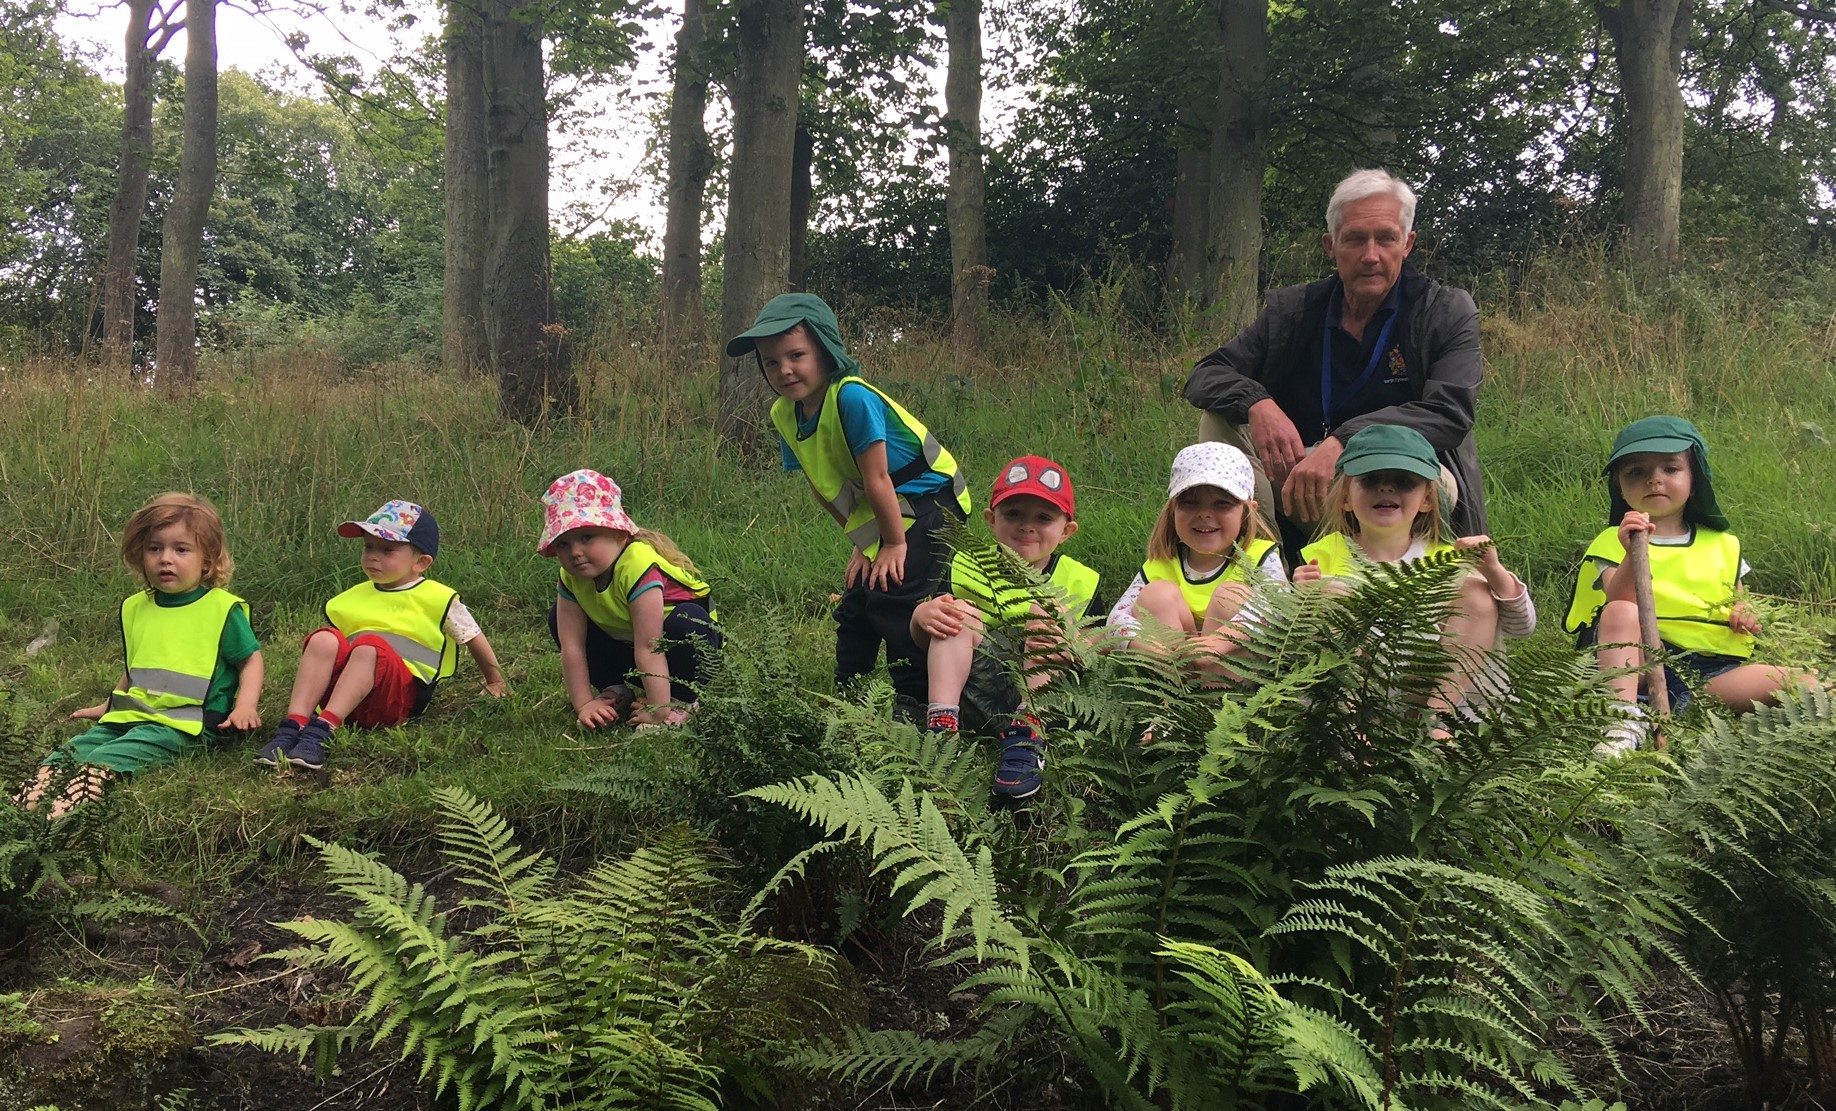 Forest School is coming to Linskill